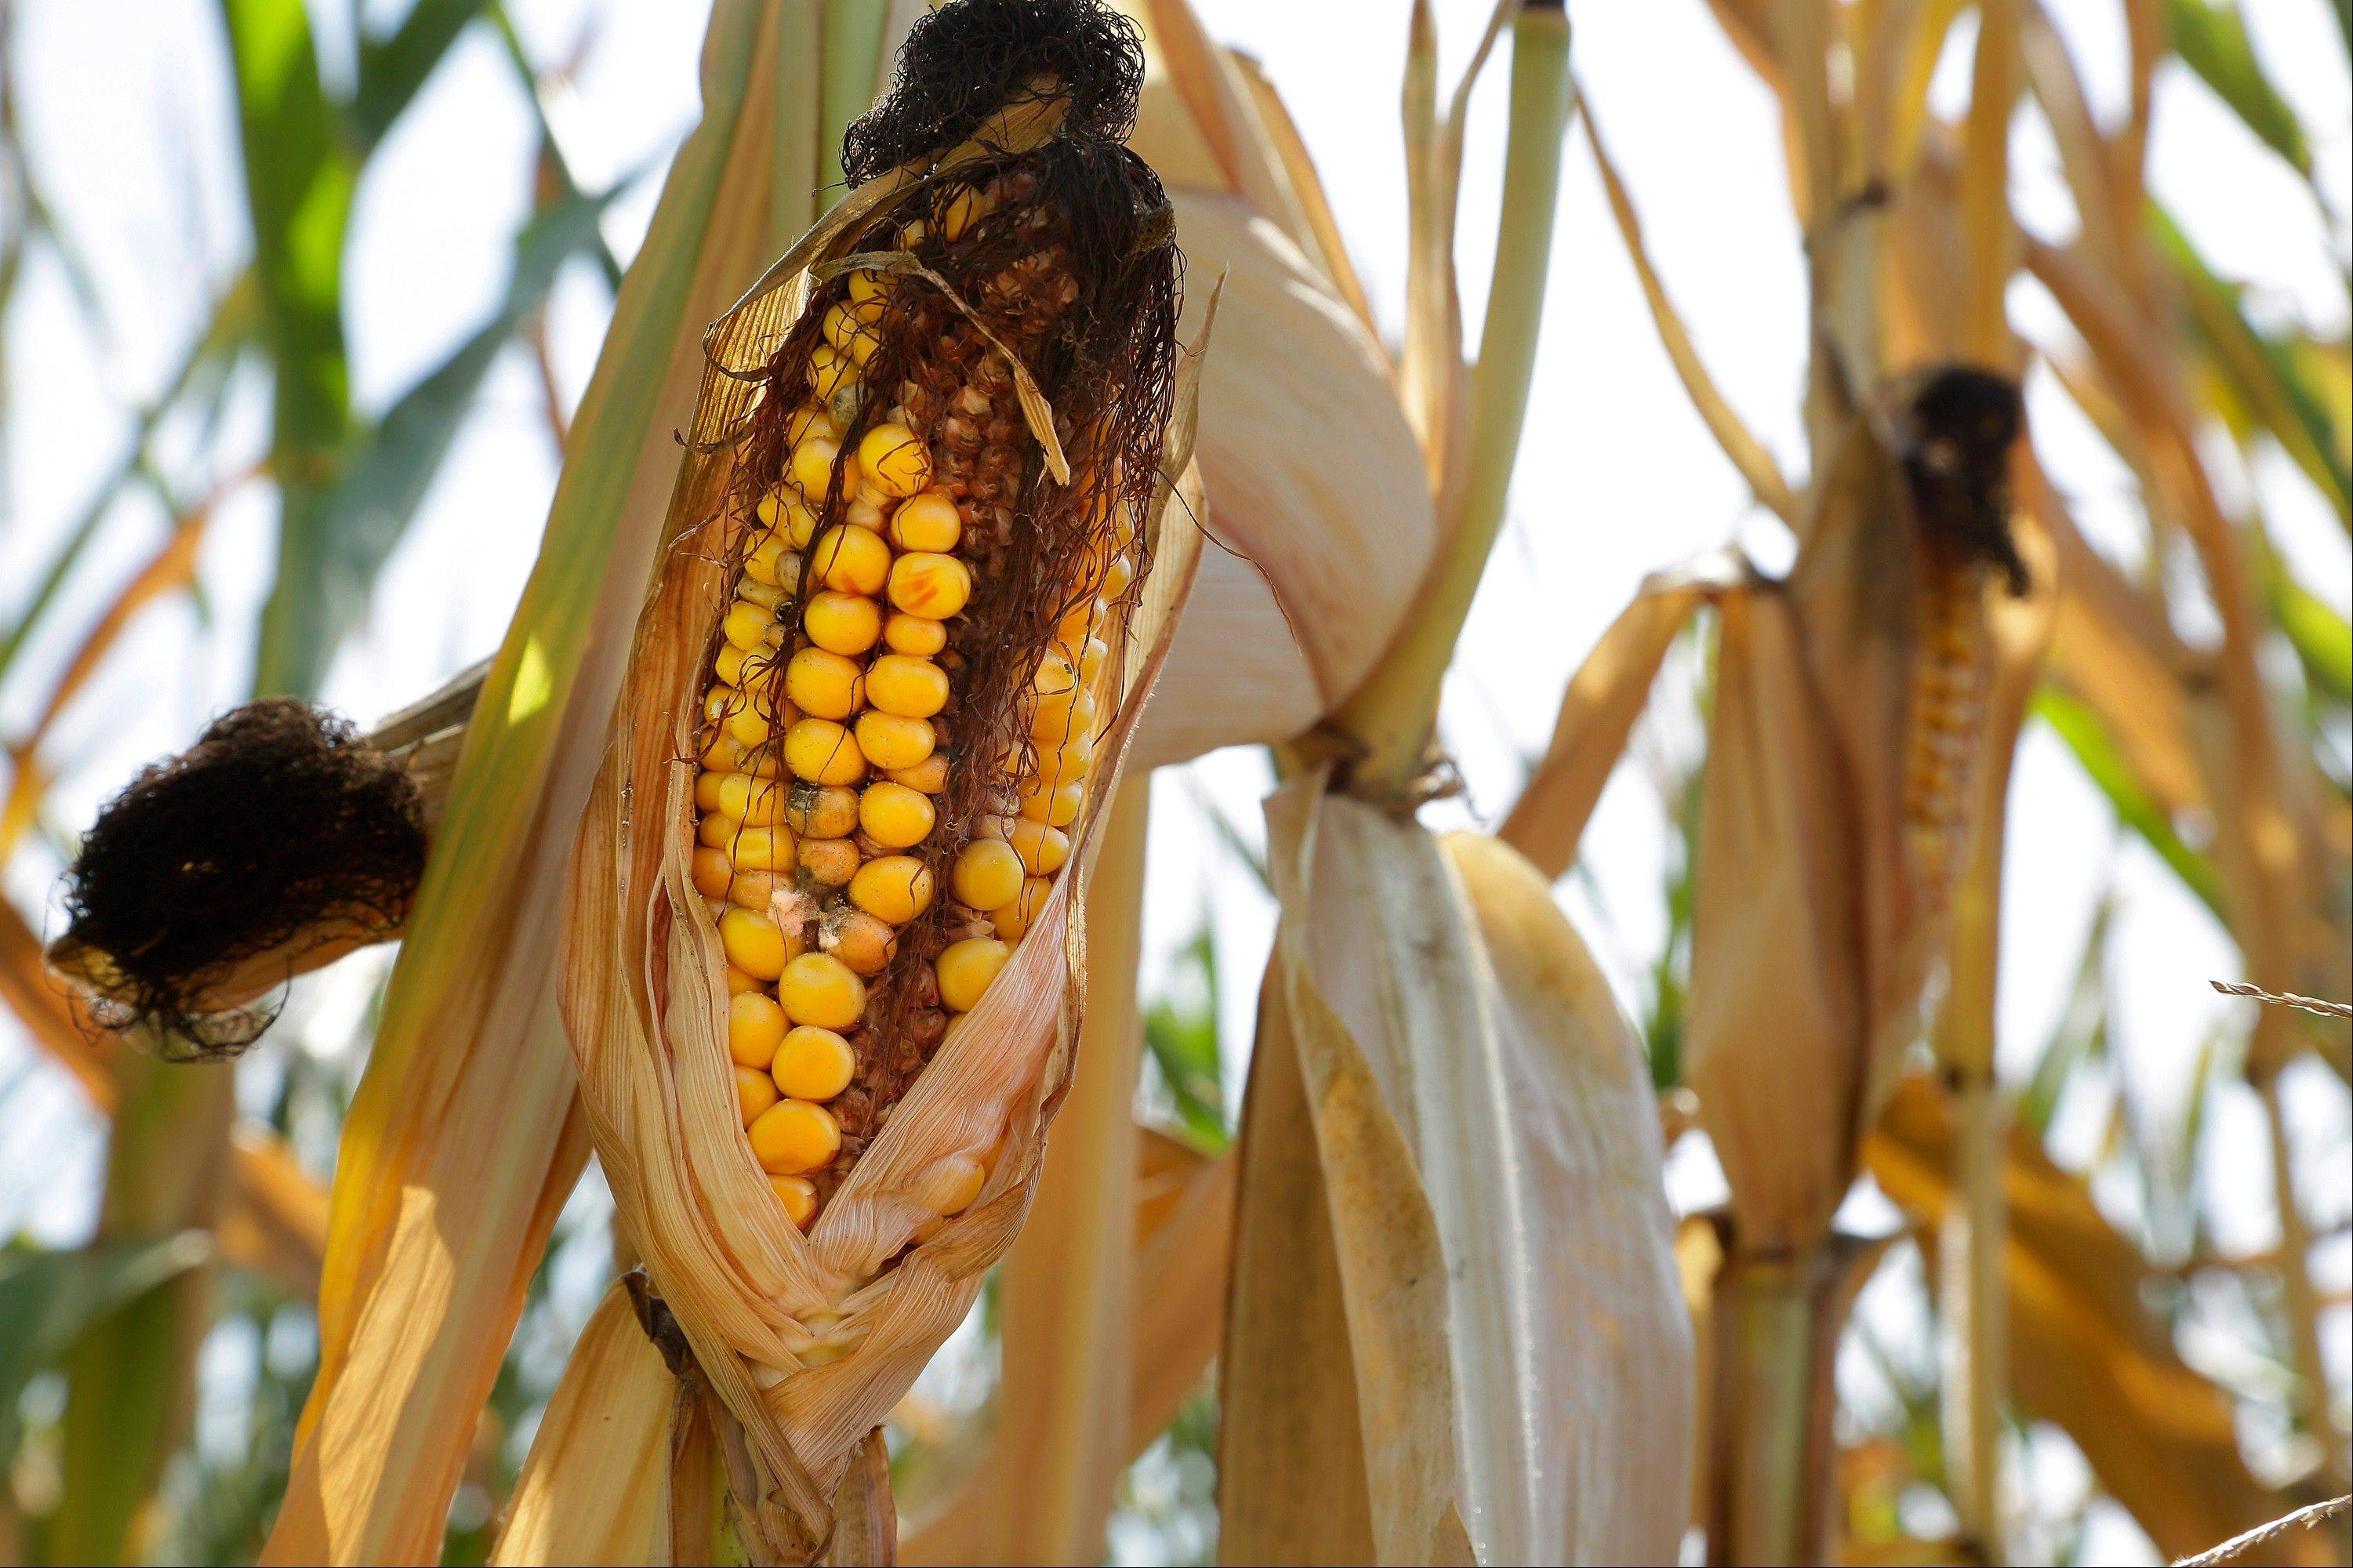 An ear of corn is blackened in the sun and heat in Farmingdale, Ill. Drought worsened in portions of Illinois, Indiana, Kansas, Minnesota, Missouri, and Wisconsin.